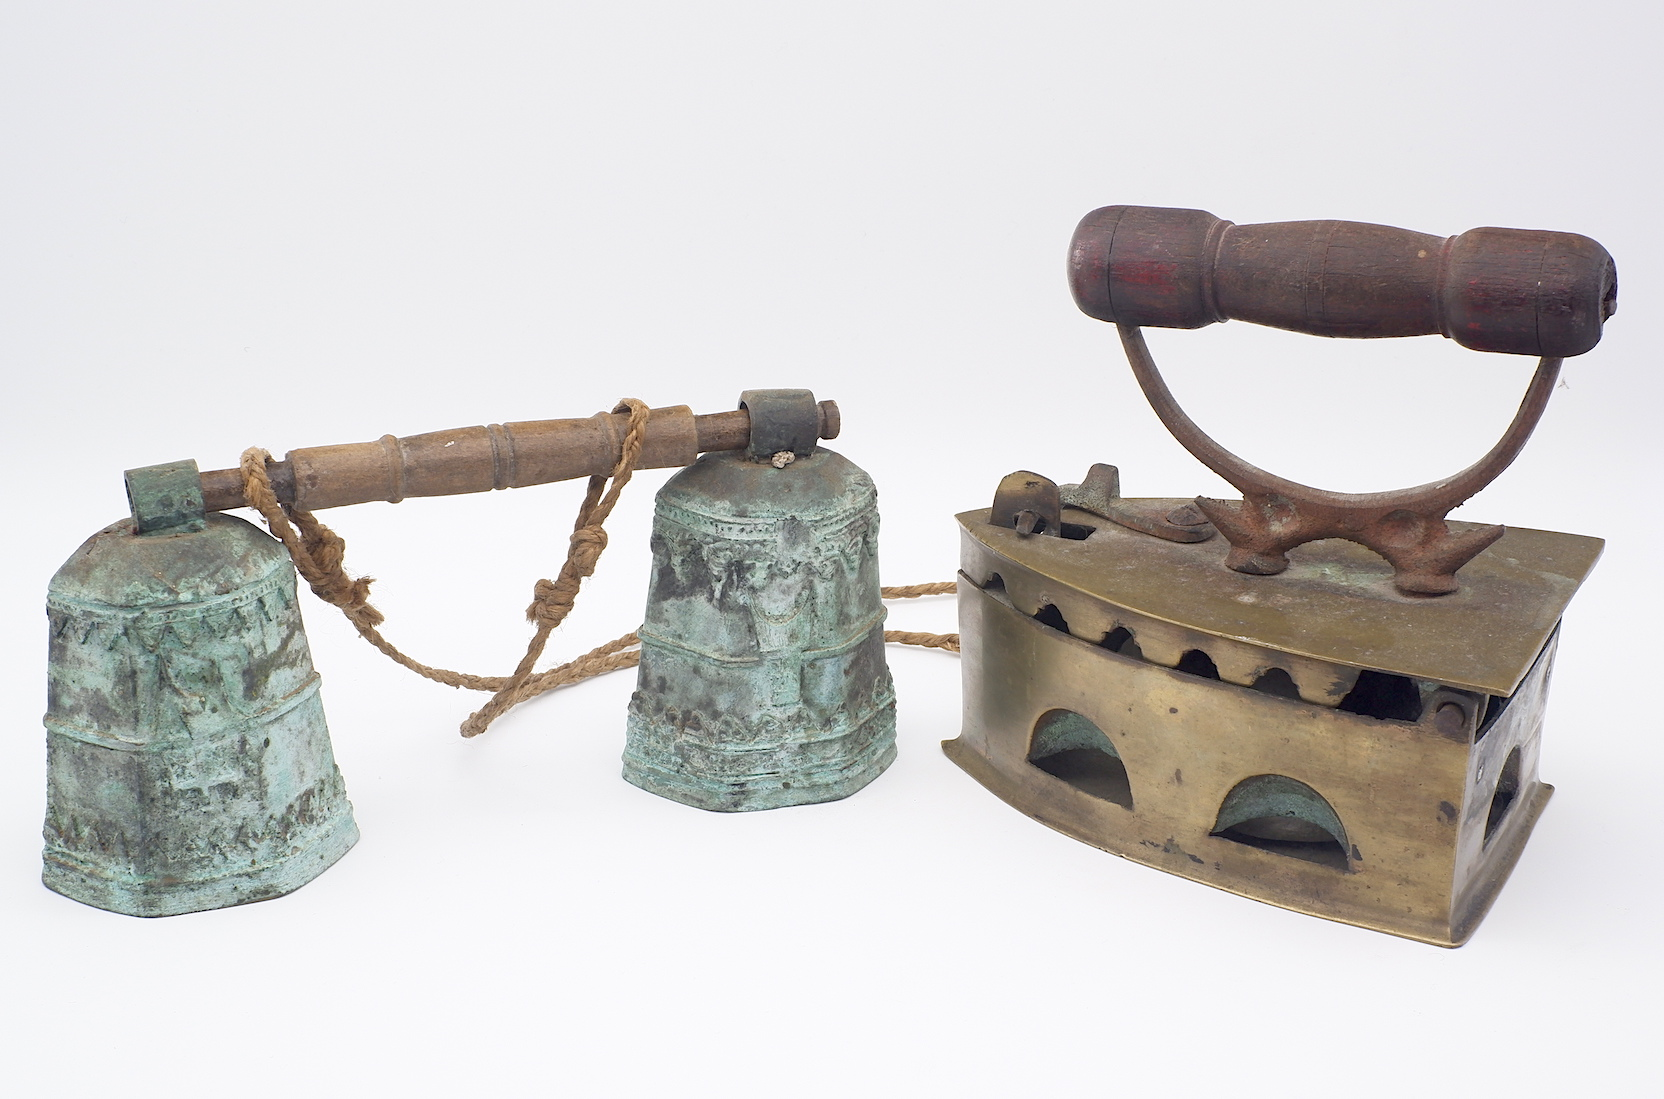 'Antique Dutch East Indies Colonial Iron and Balinese Cowbells'